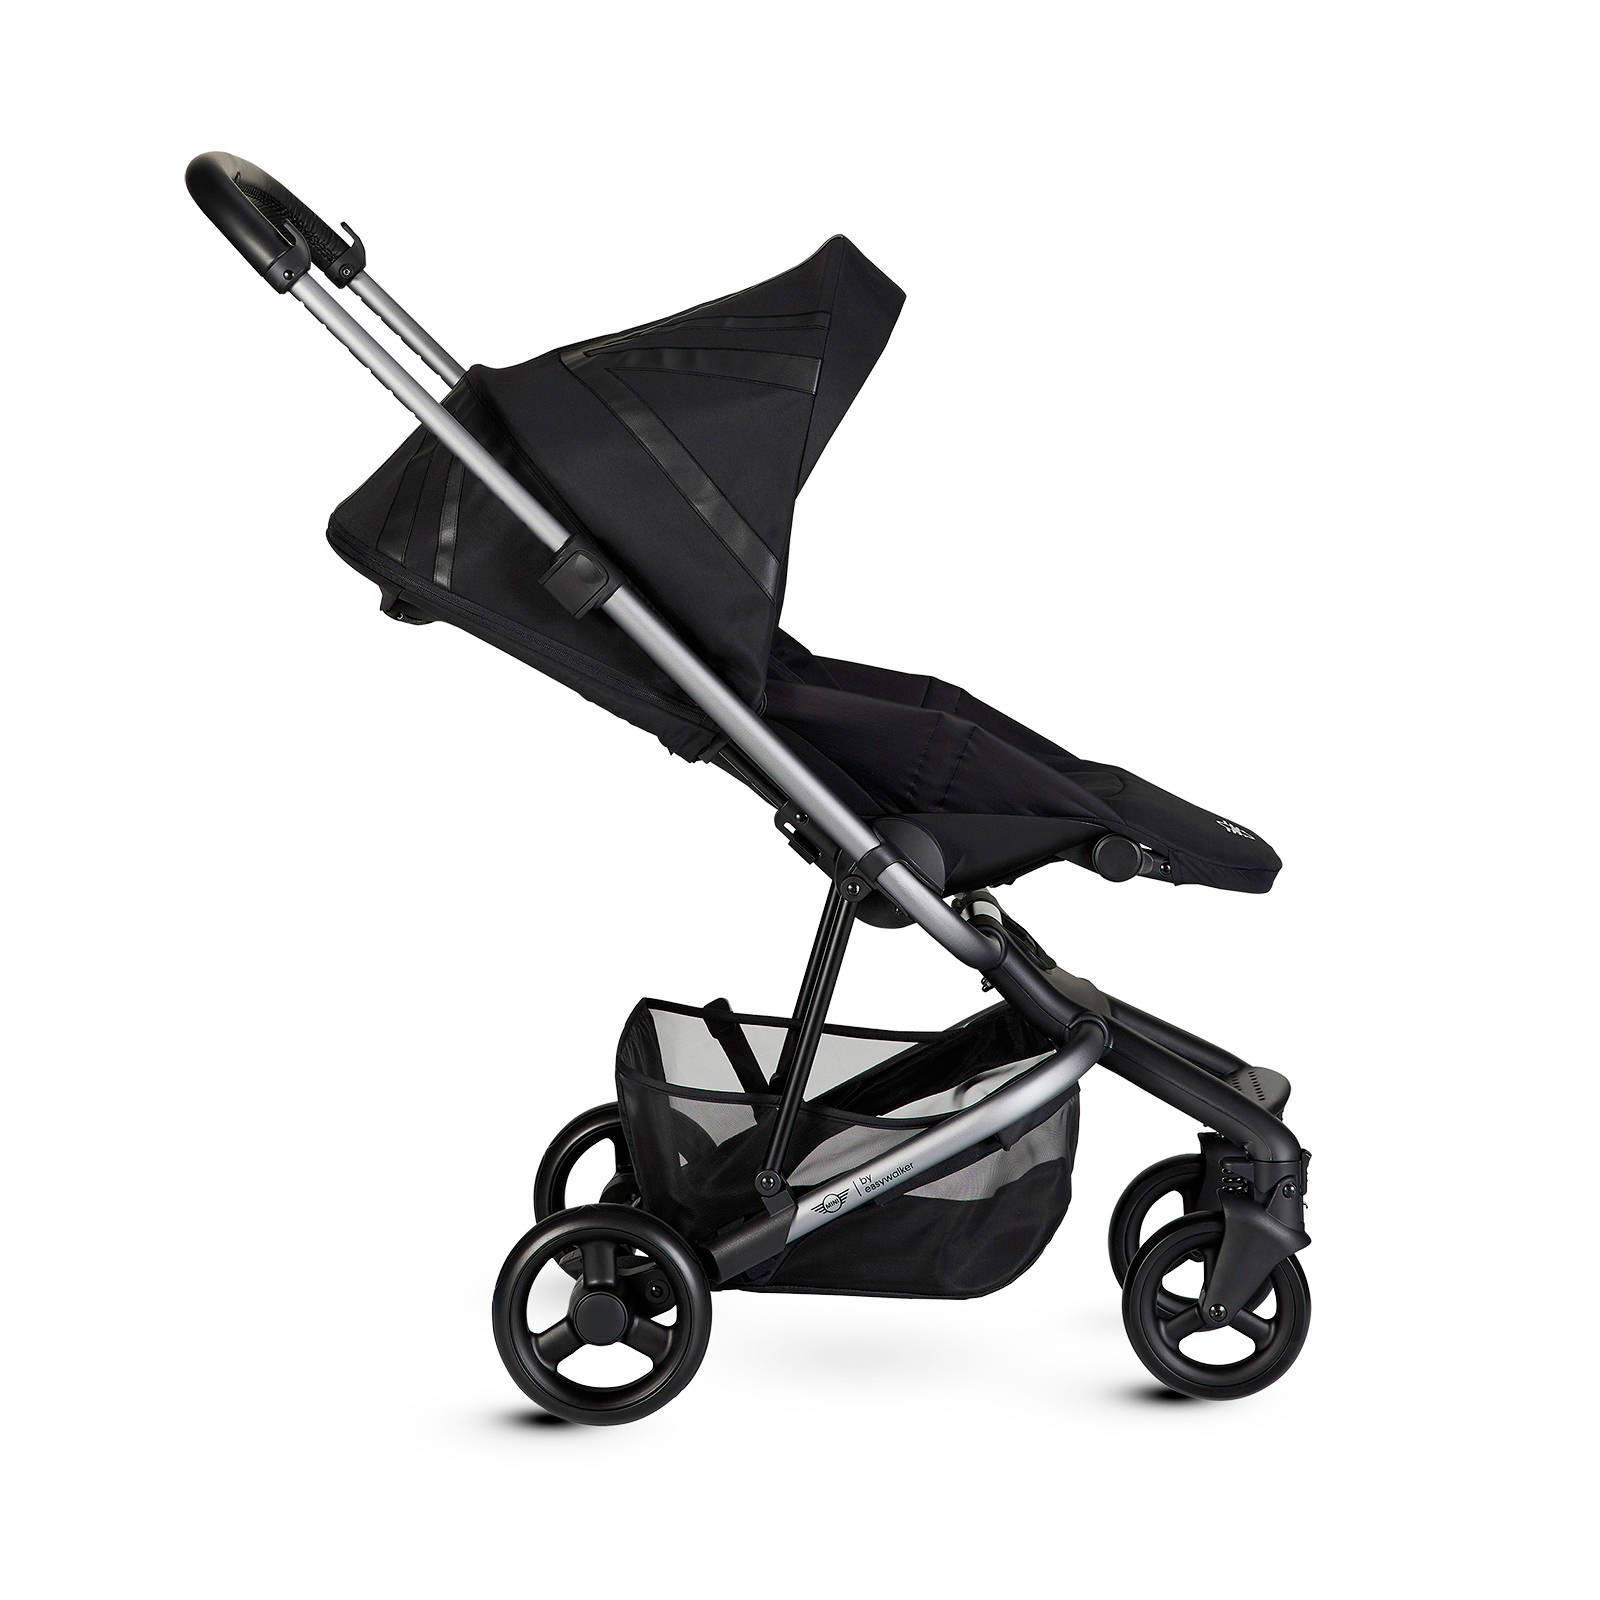 Kinderwagen Easywalker Duo Easywalker Mini 2 In 1 Kinderwagen Oxford Black Wehkamp